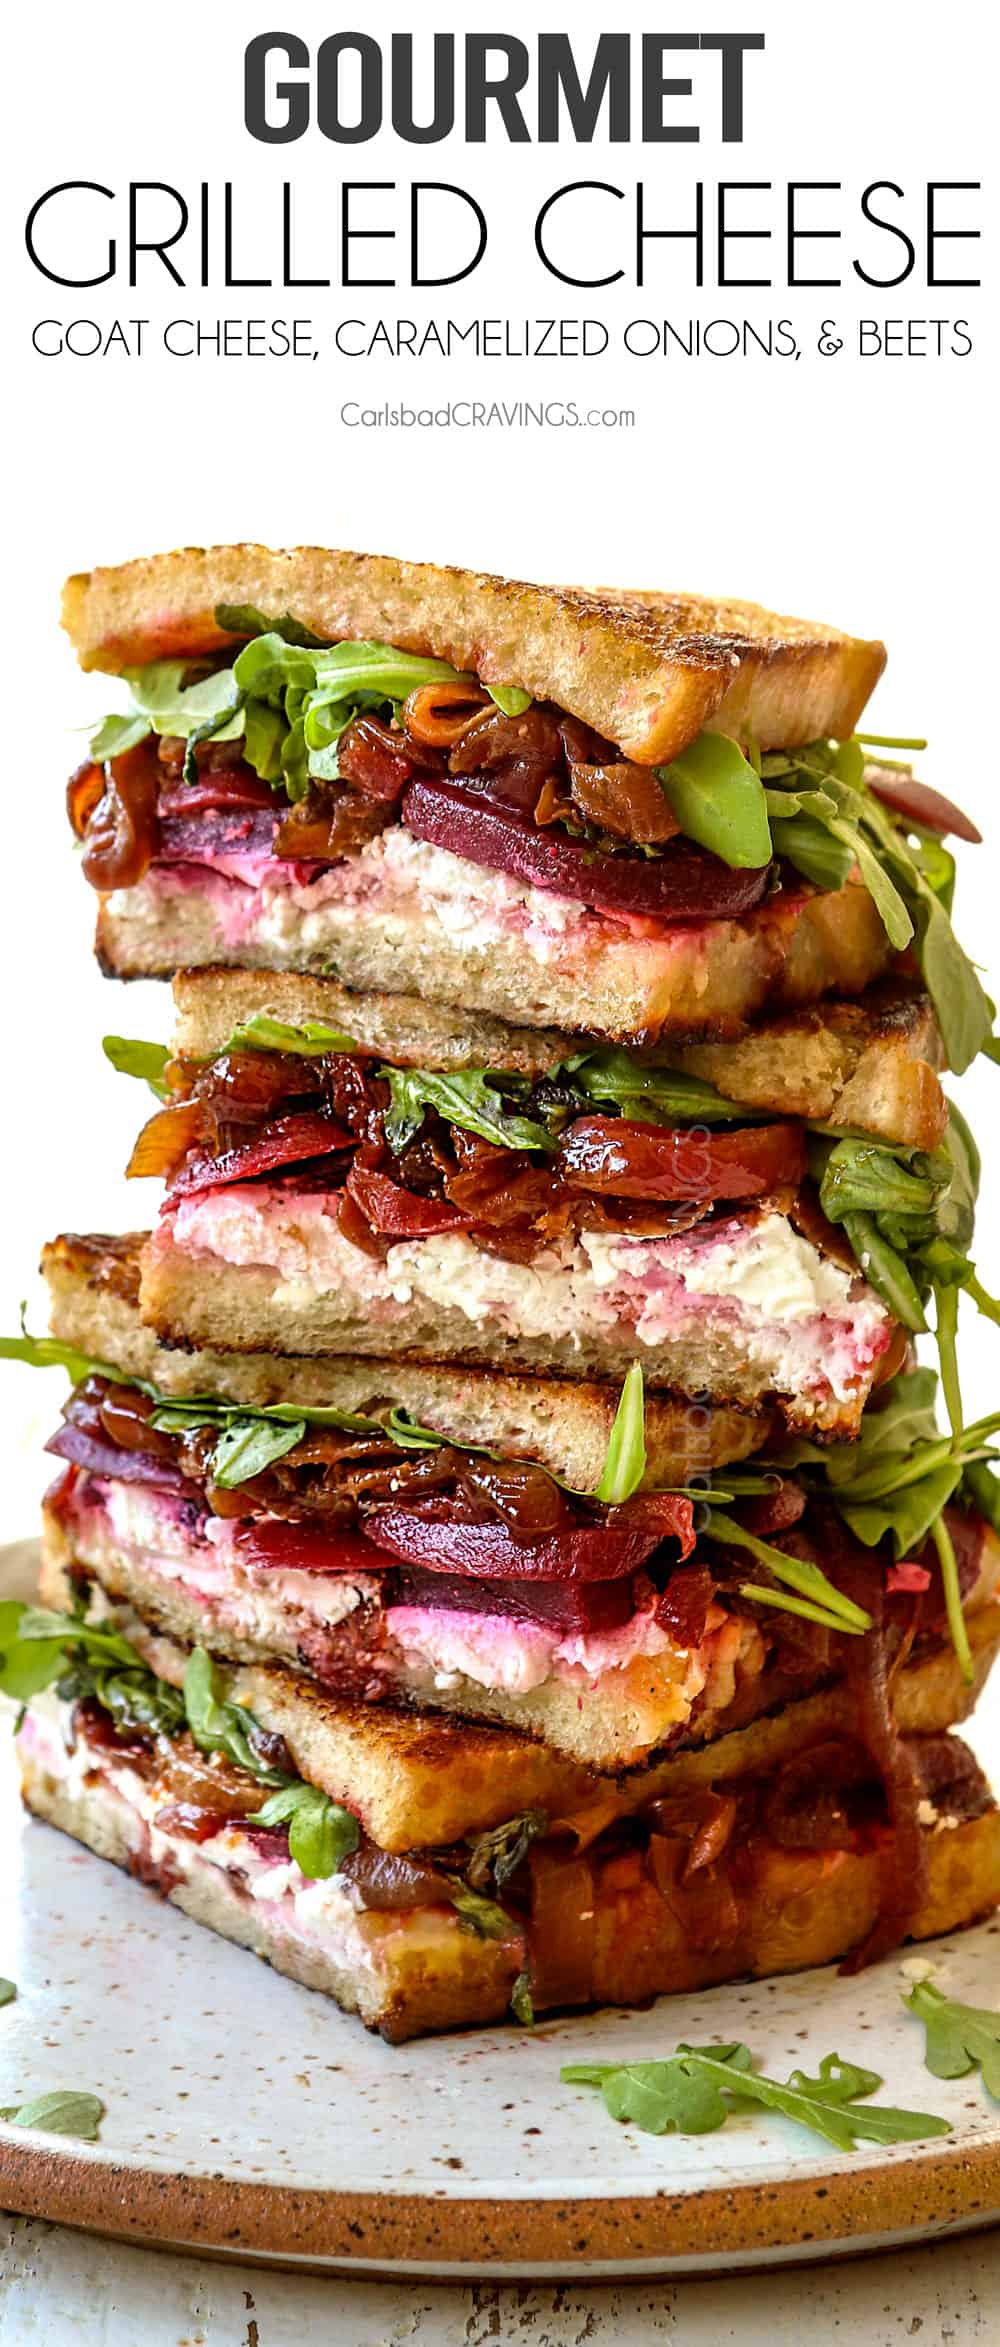 gourmet grilled cheese sliced and stacked with caramelized onions, goat cheese and arugula